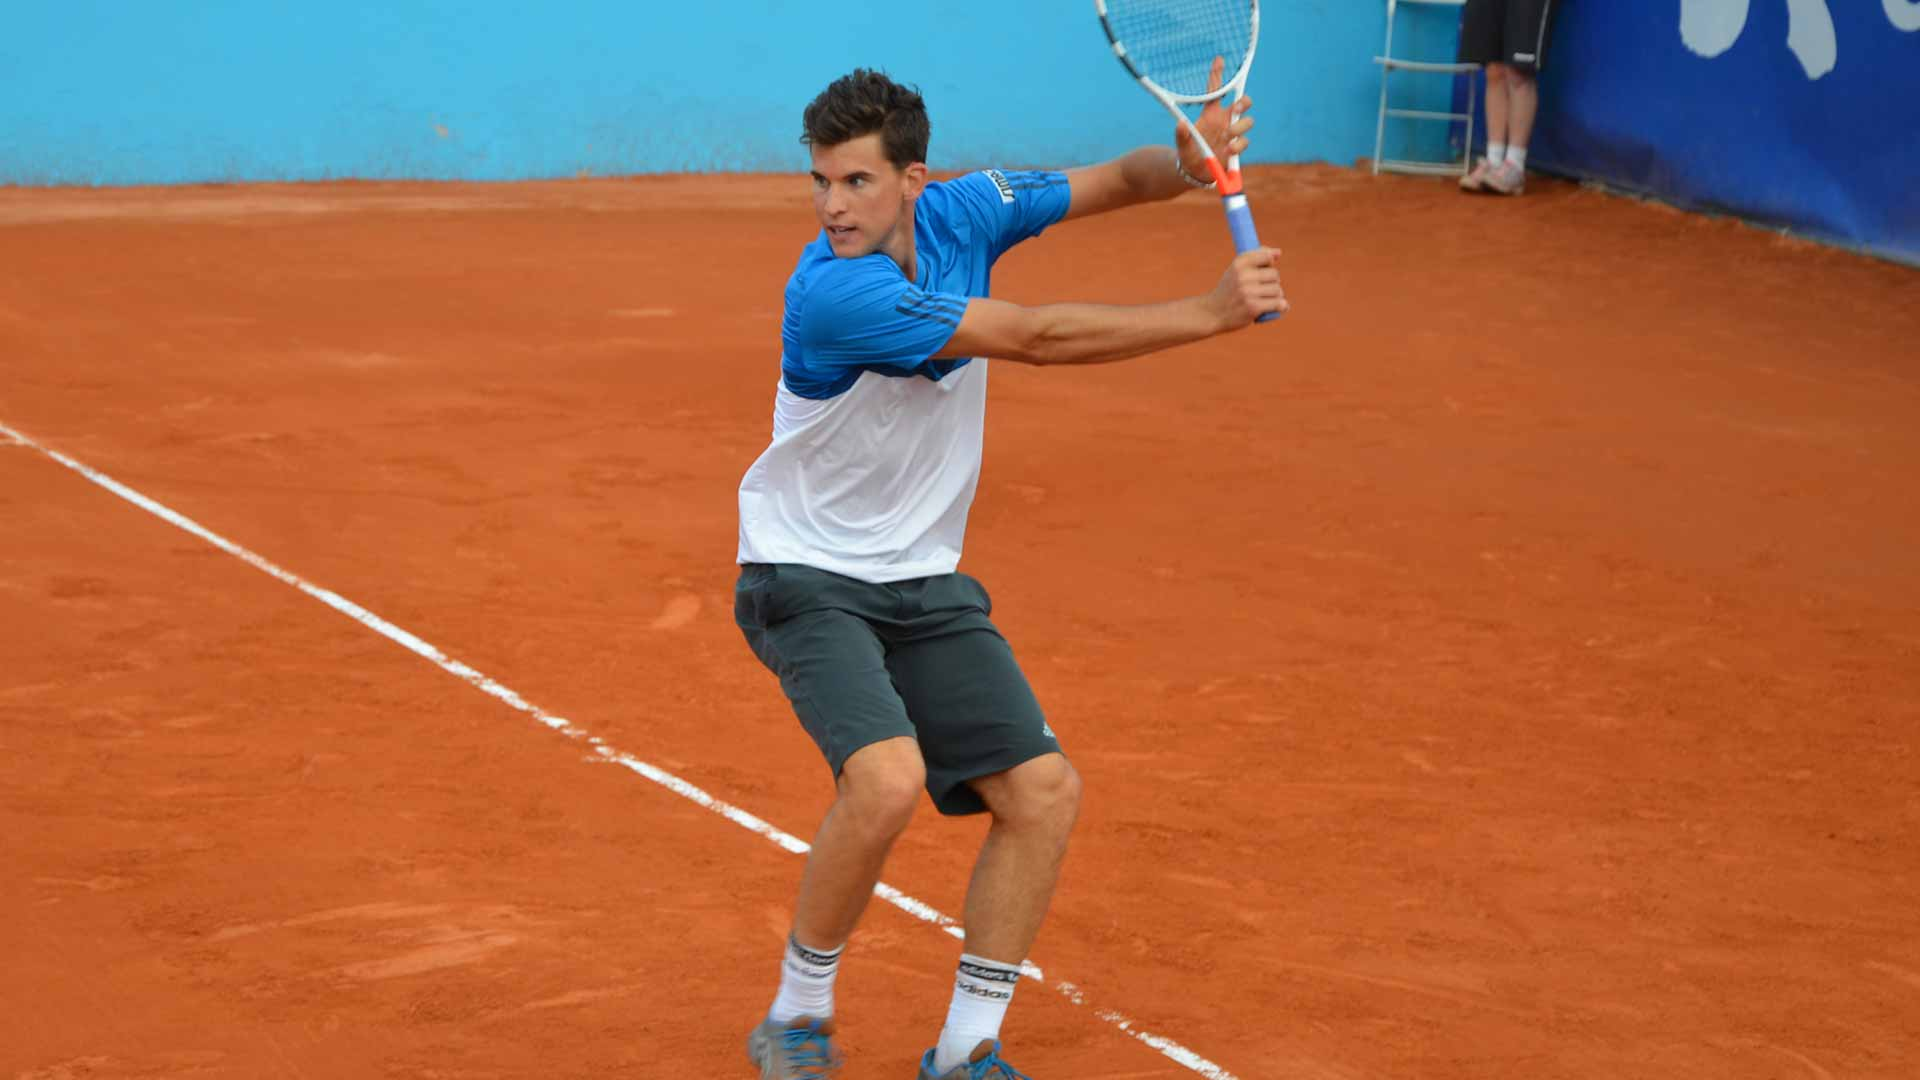 Dominic Thiem downs Andreas Seppi to advance to the semi-finals.